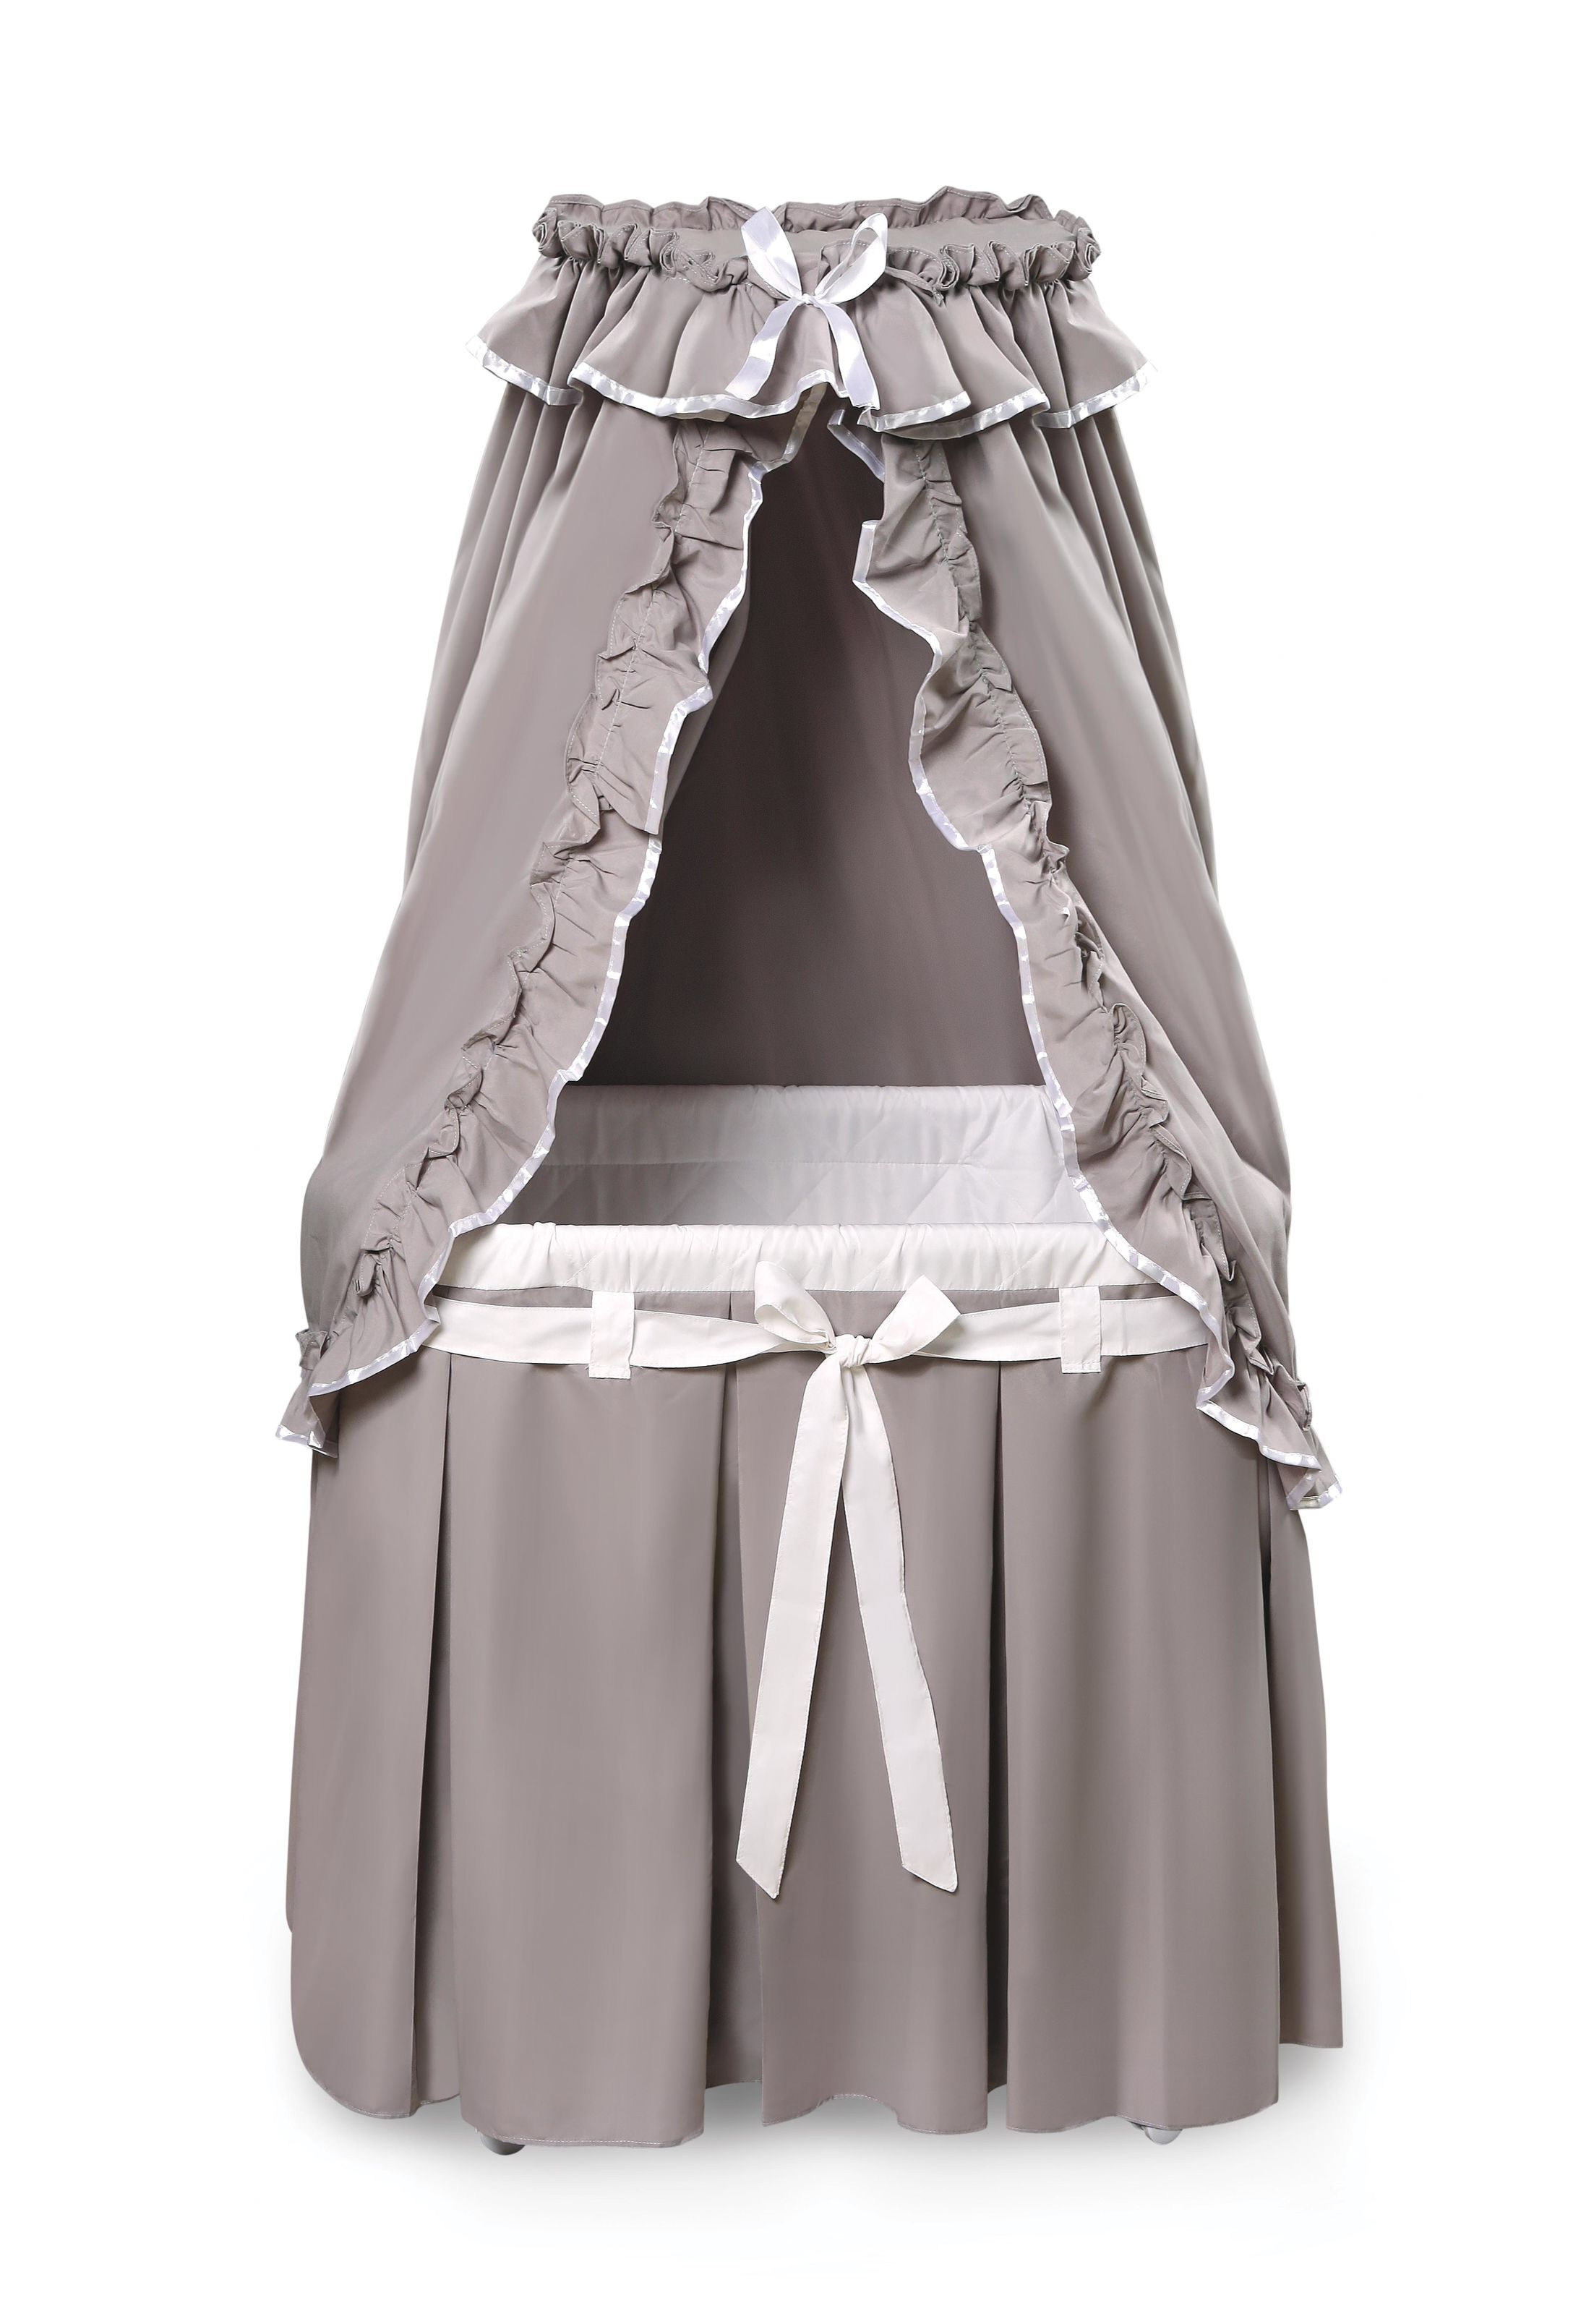 Features Bedding Is Removable And Machine Washable Complete Bassinet With Bedding Liner